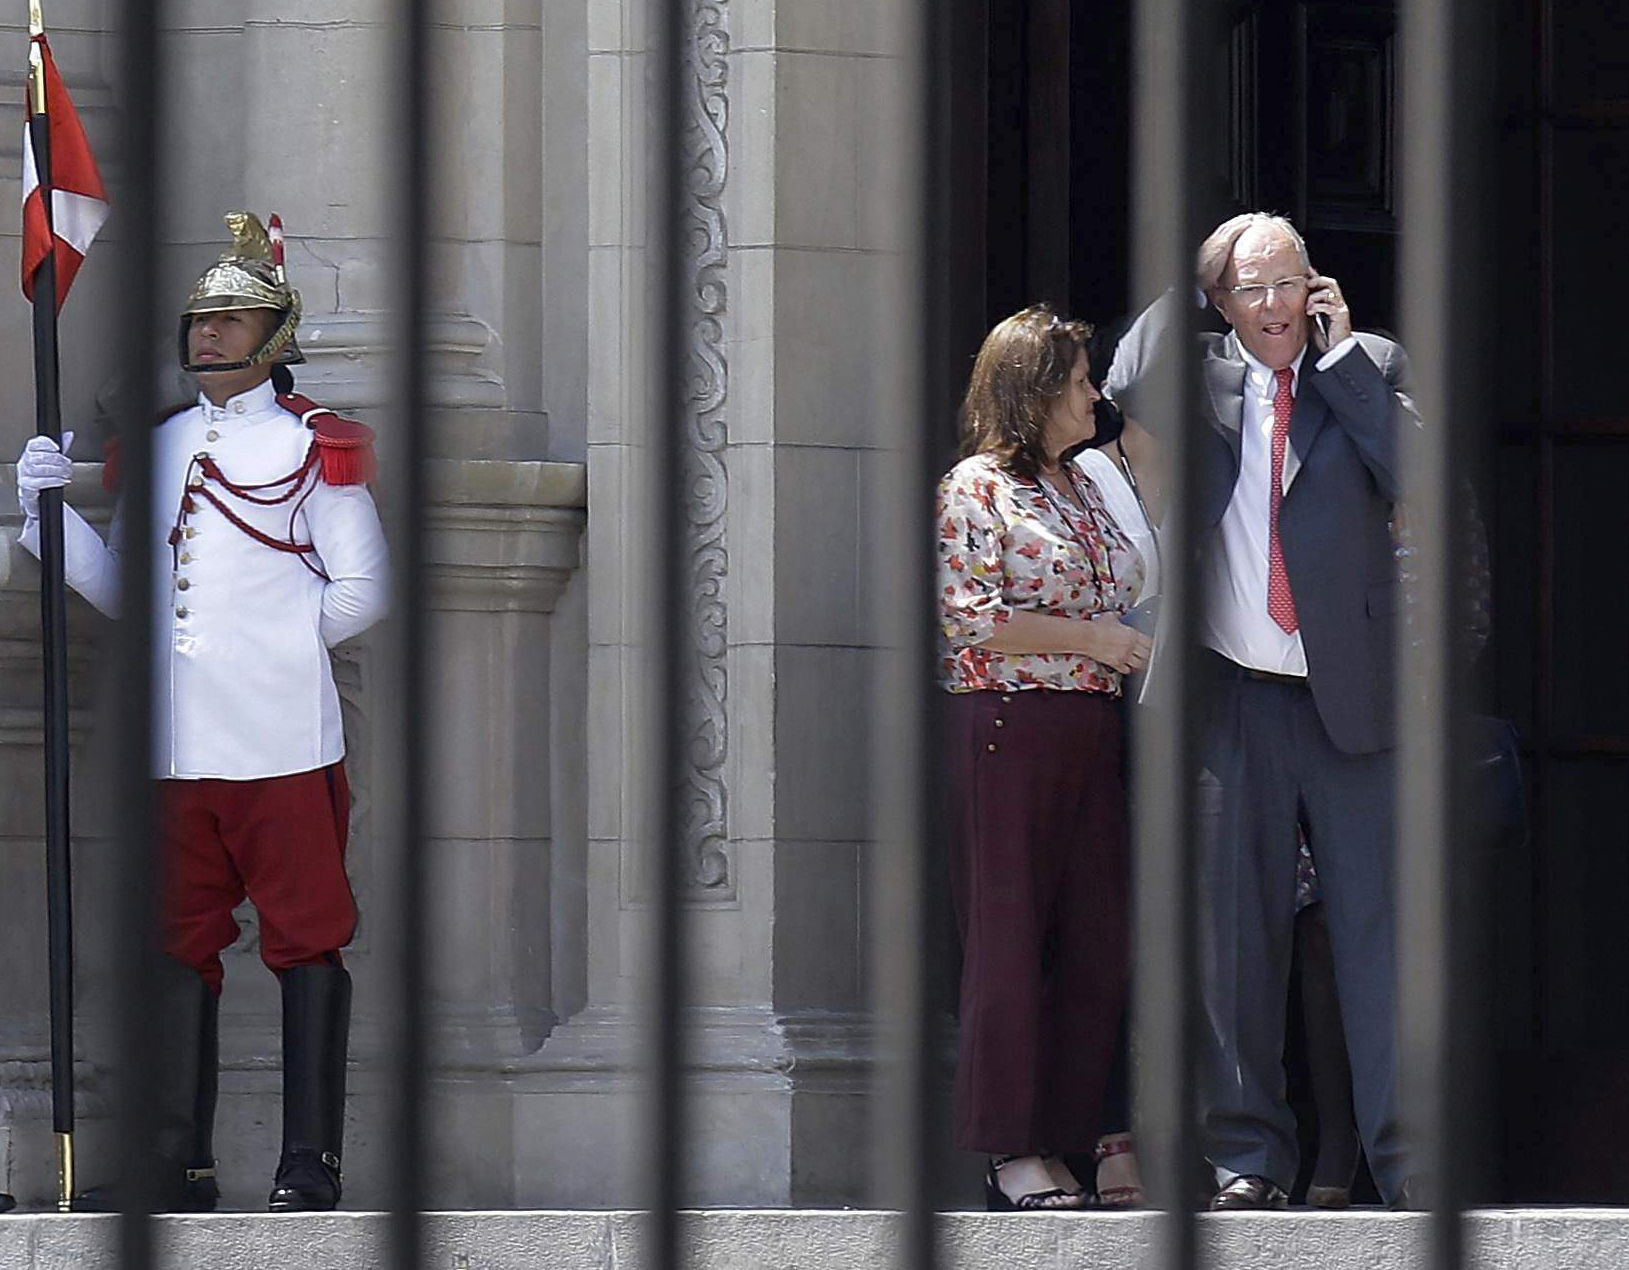 Peruvian president resigns amid corruption scandal